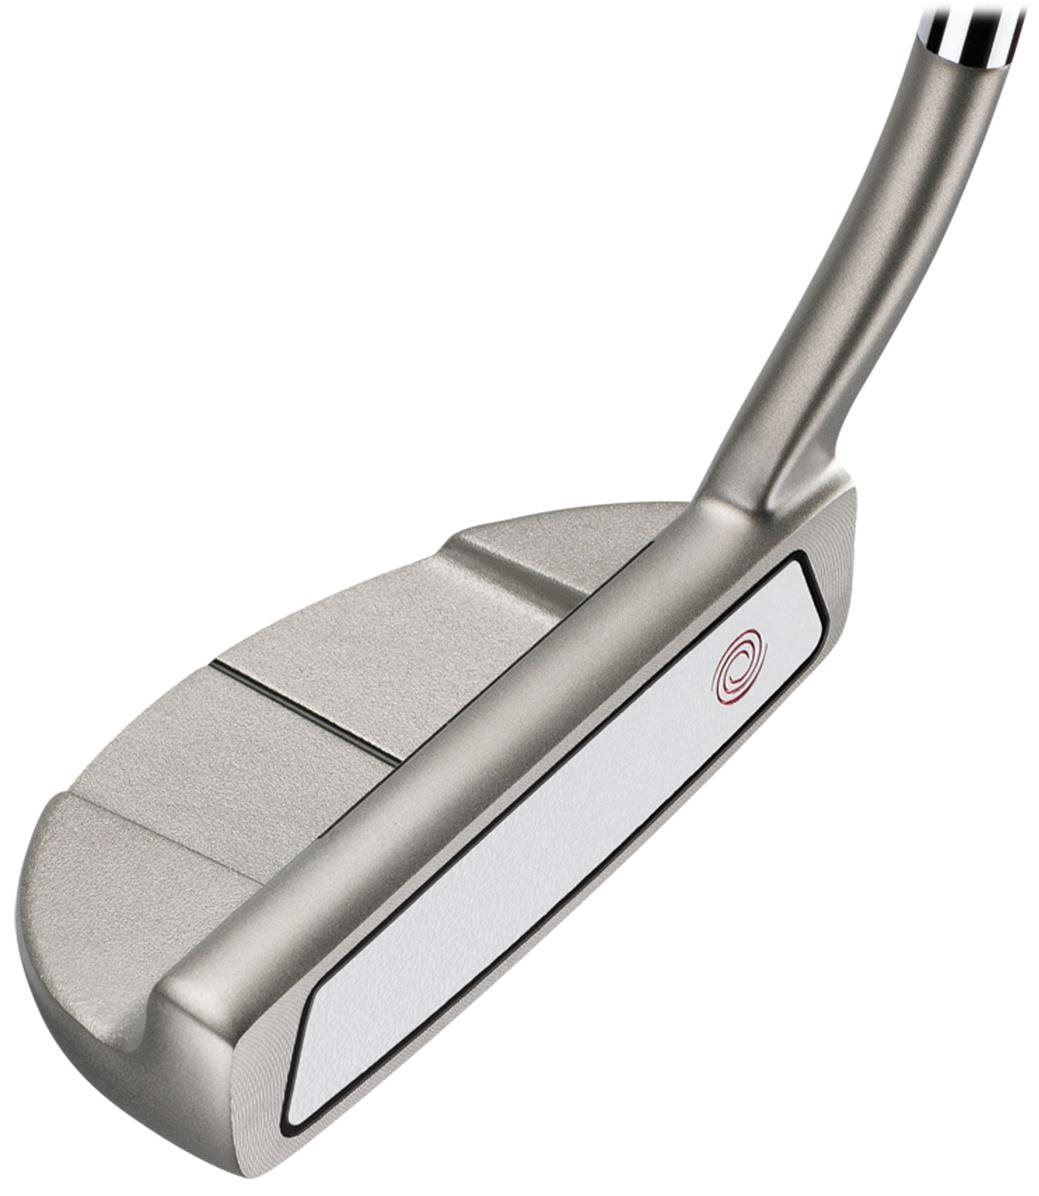 Odyssey White Hot Pro 2.0 9 putter